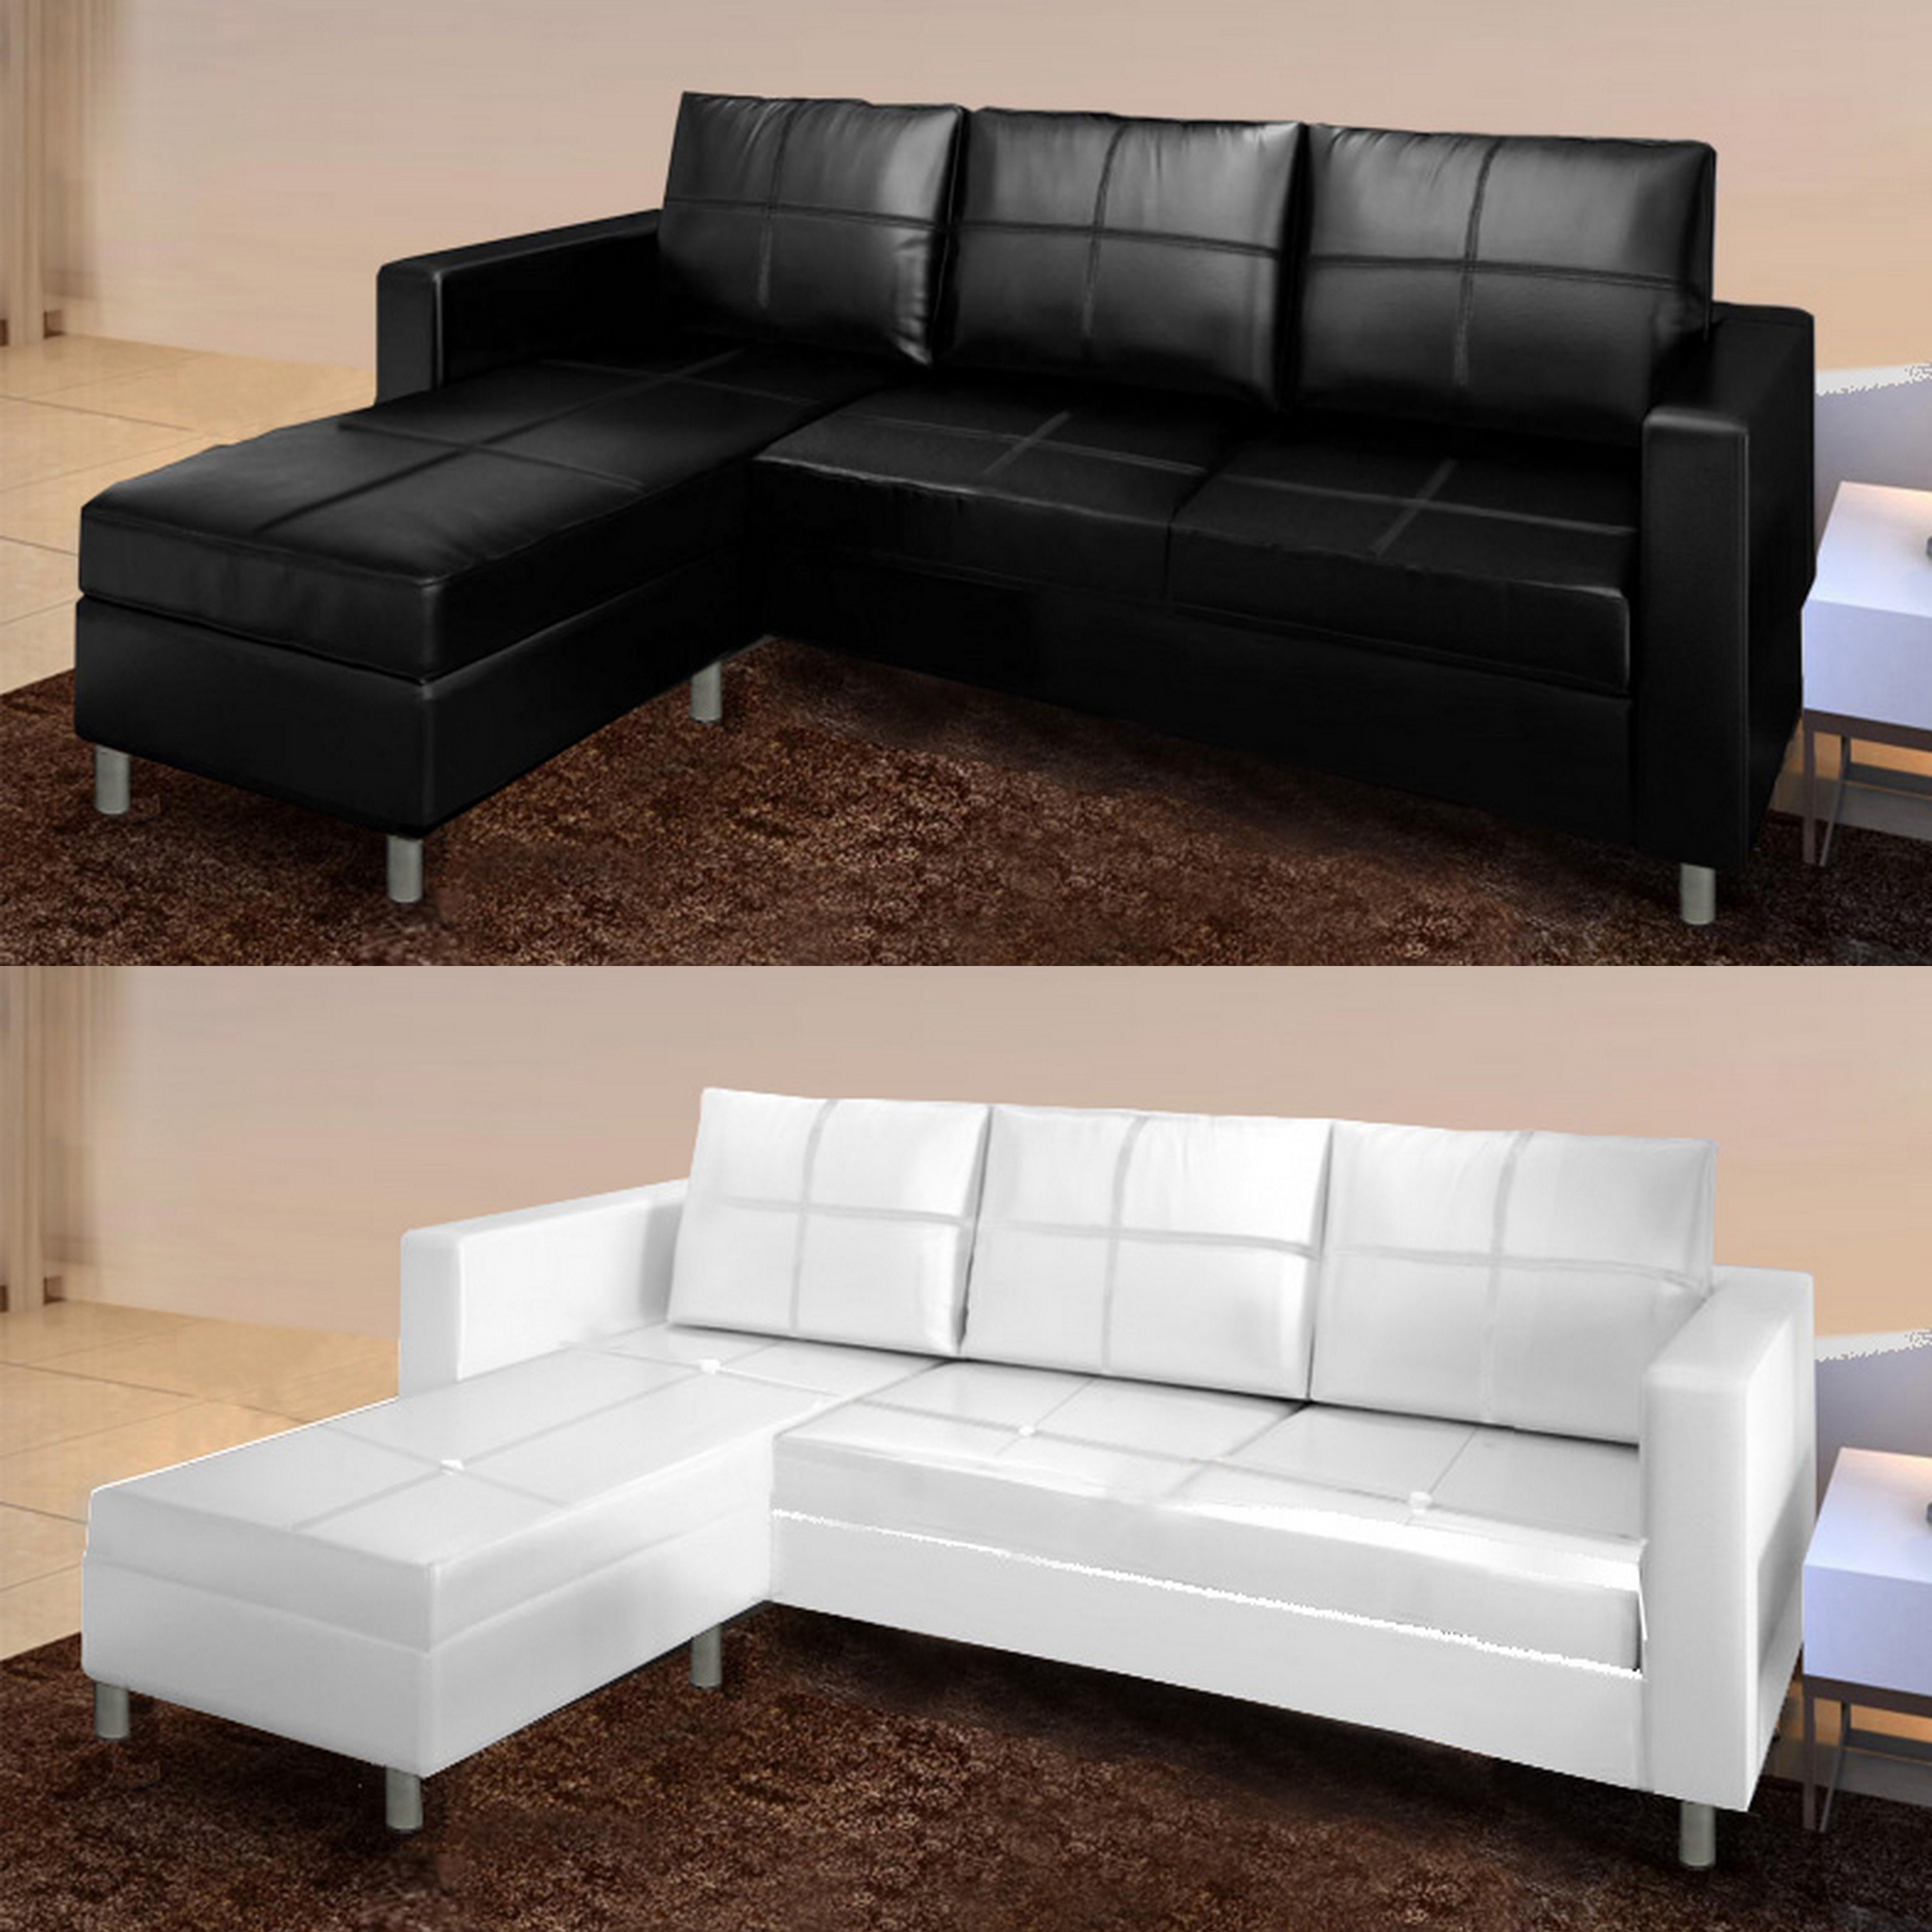 Corner sofa for living room, with ottoman/pouf, 205 cm, black/white faux  leather, 3 seater, living room, Romantic model